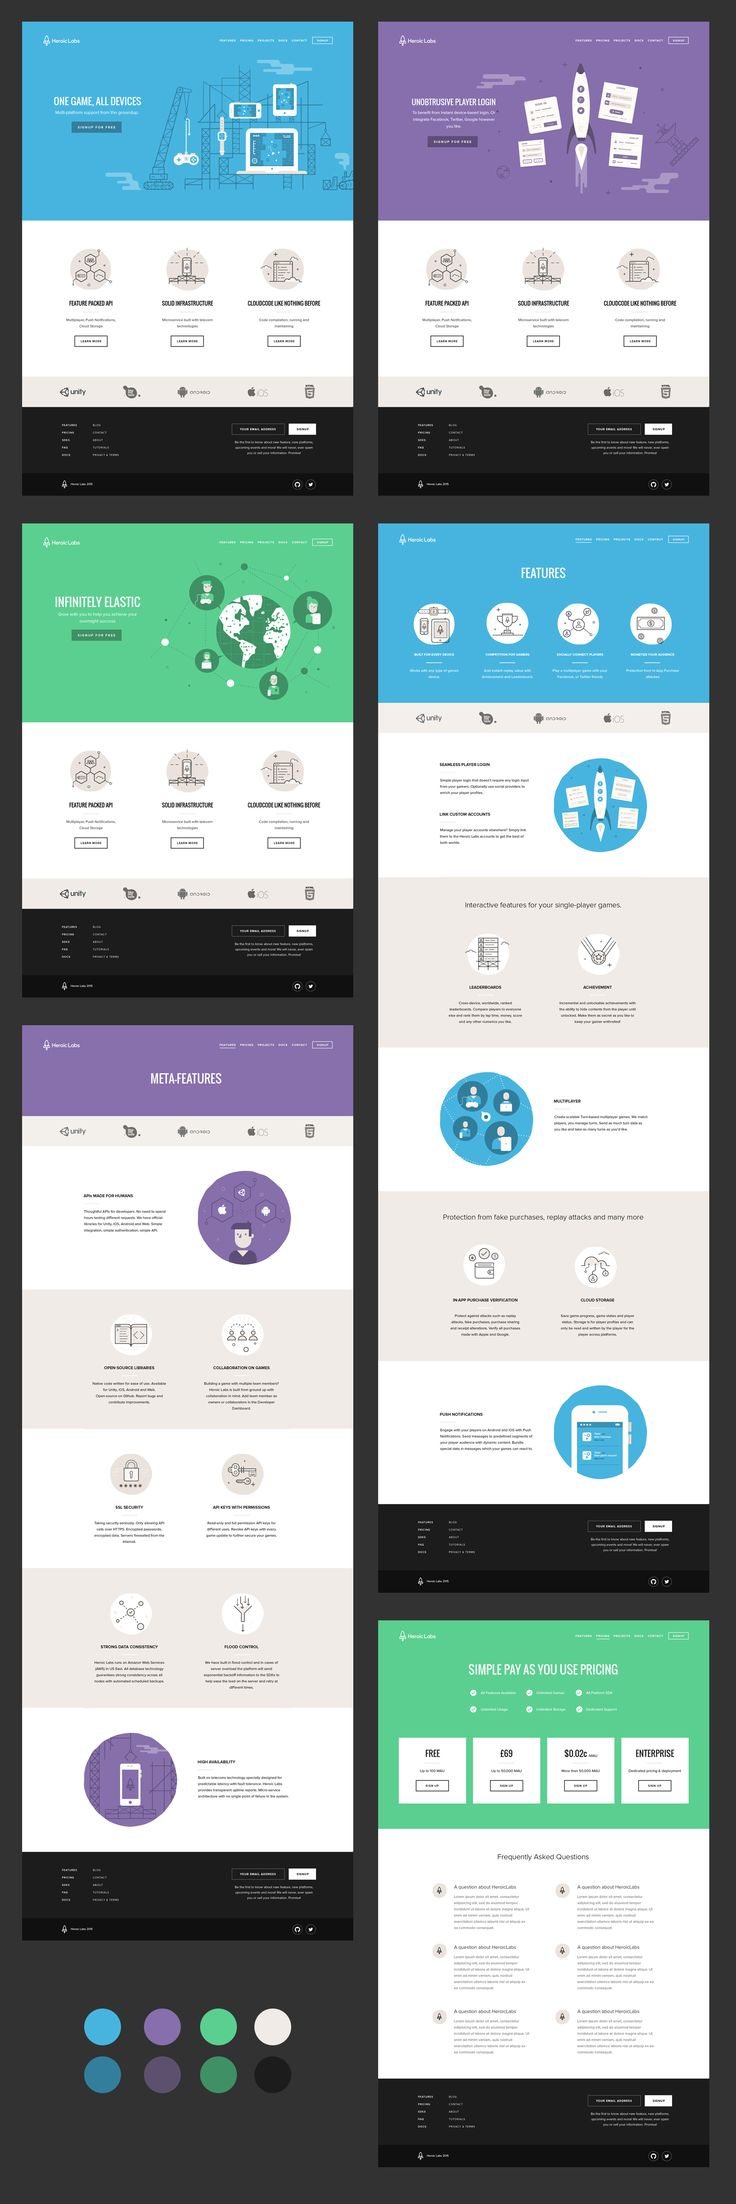 Heroic Labs new marketing website. Ui design concept and illustration by Oli Lisher.